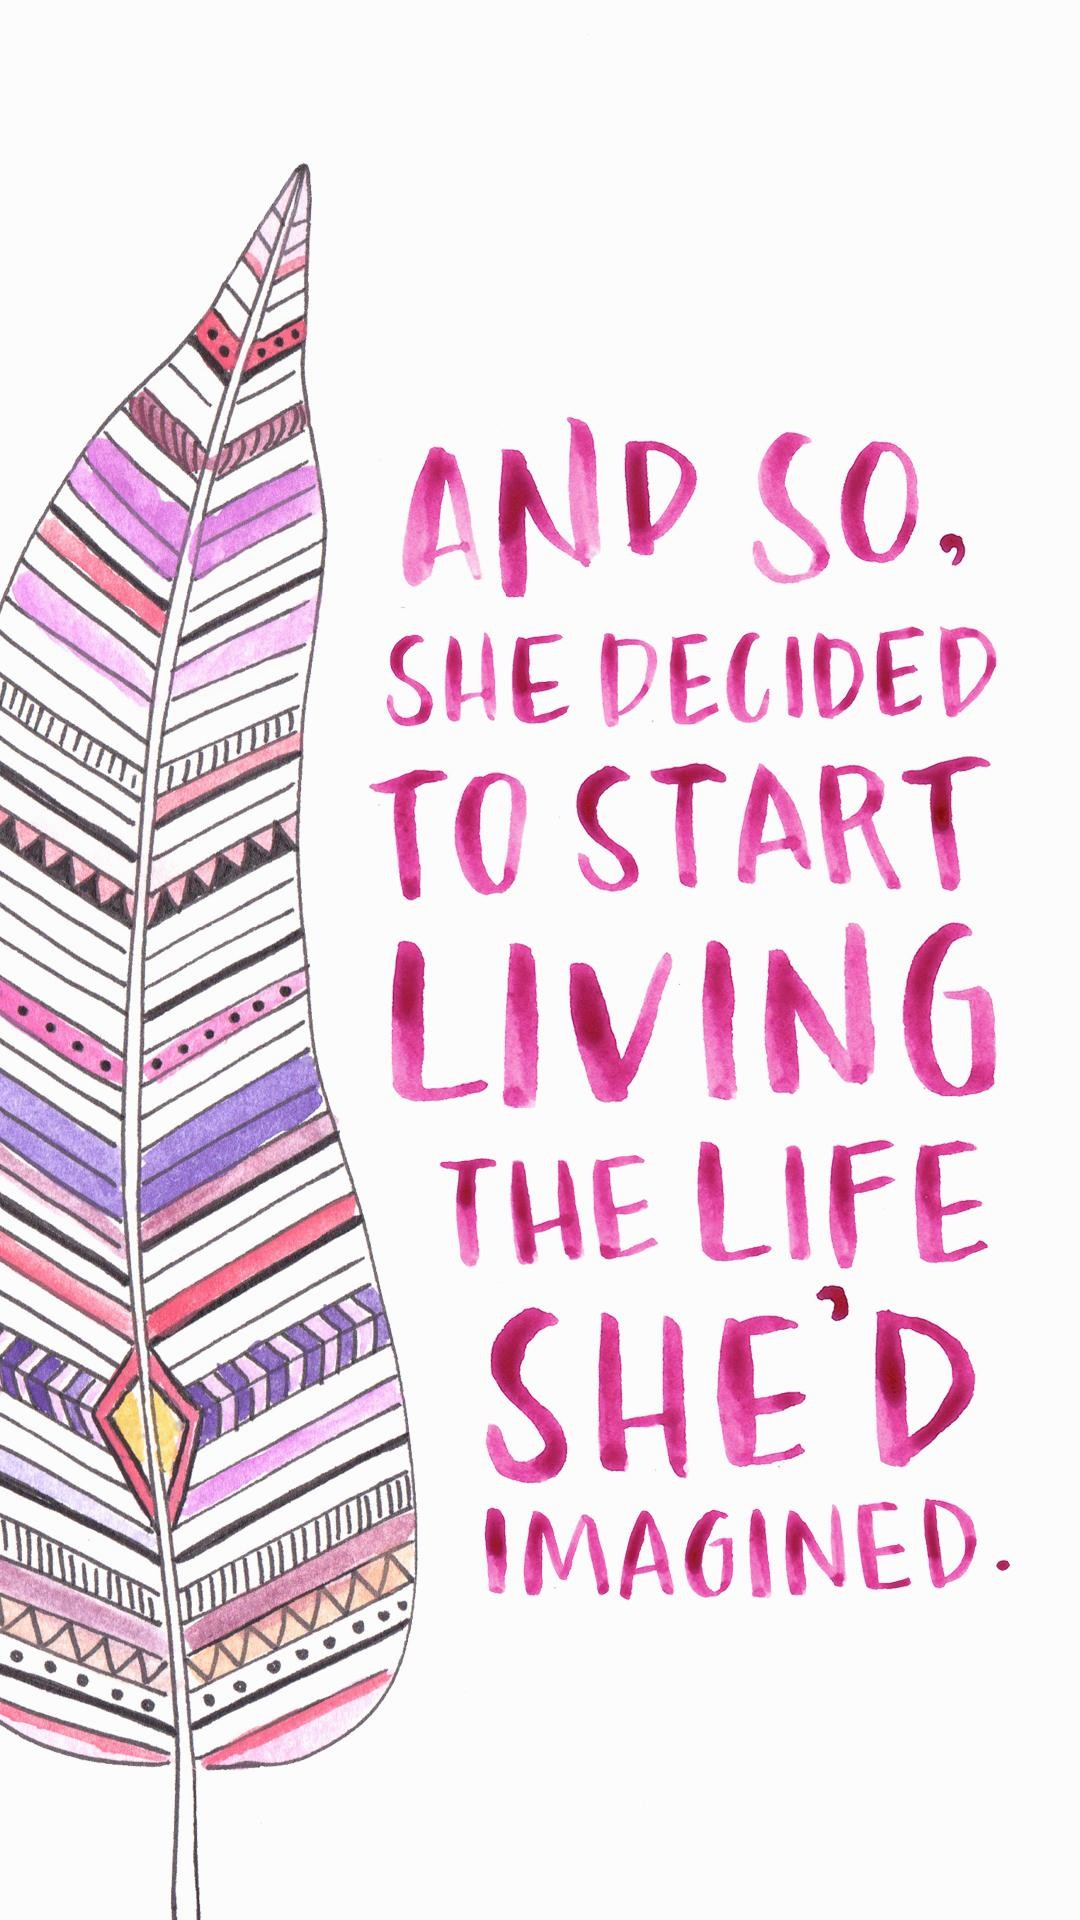 And-so-she-decided-living-the-life-shed-